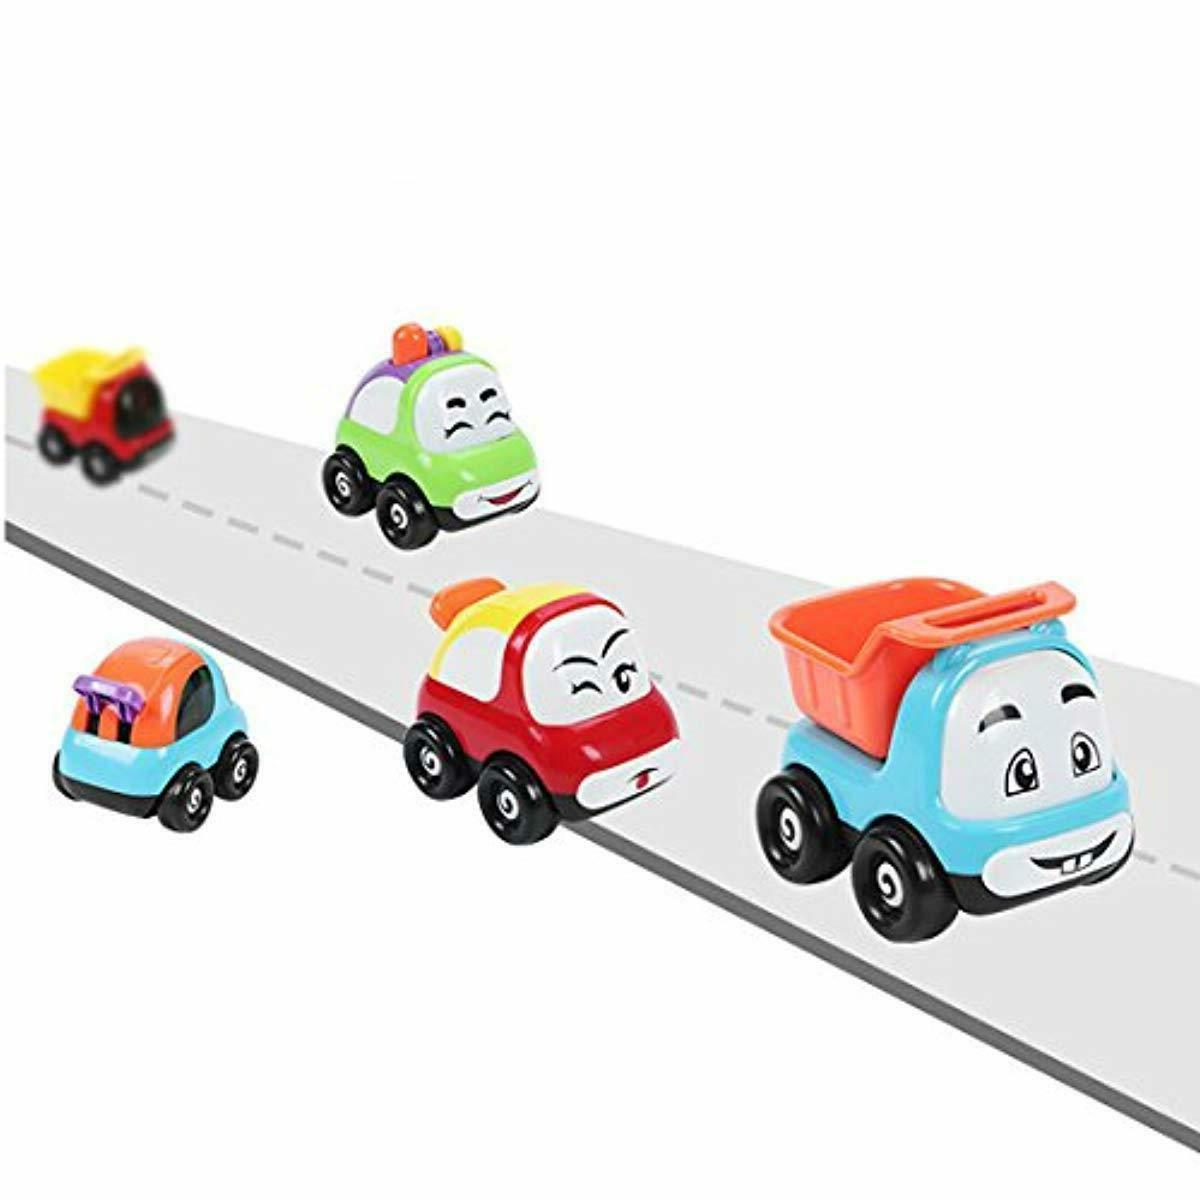 Little Toy Trucks Set Toddlers Car